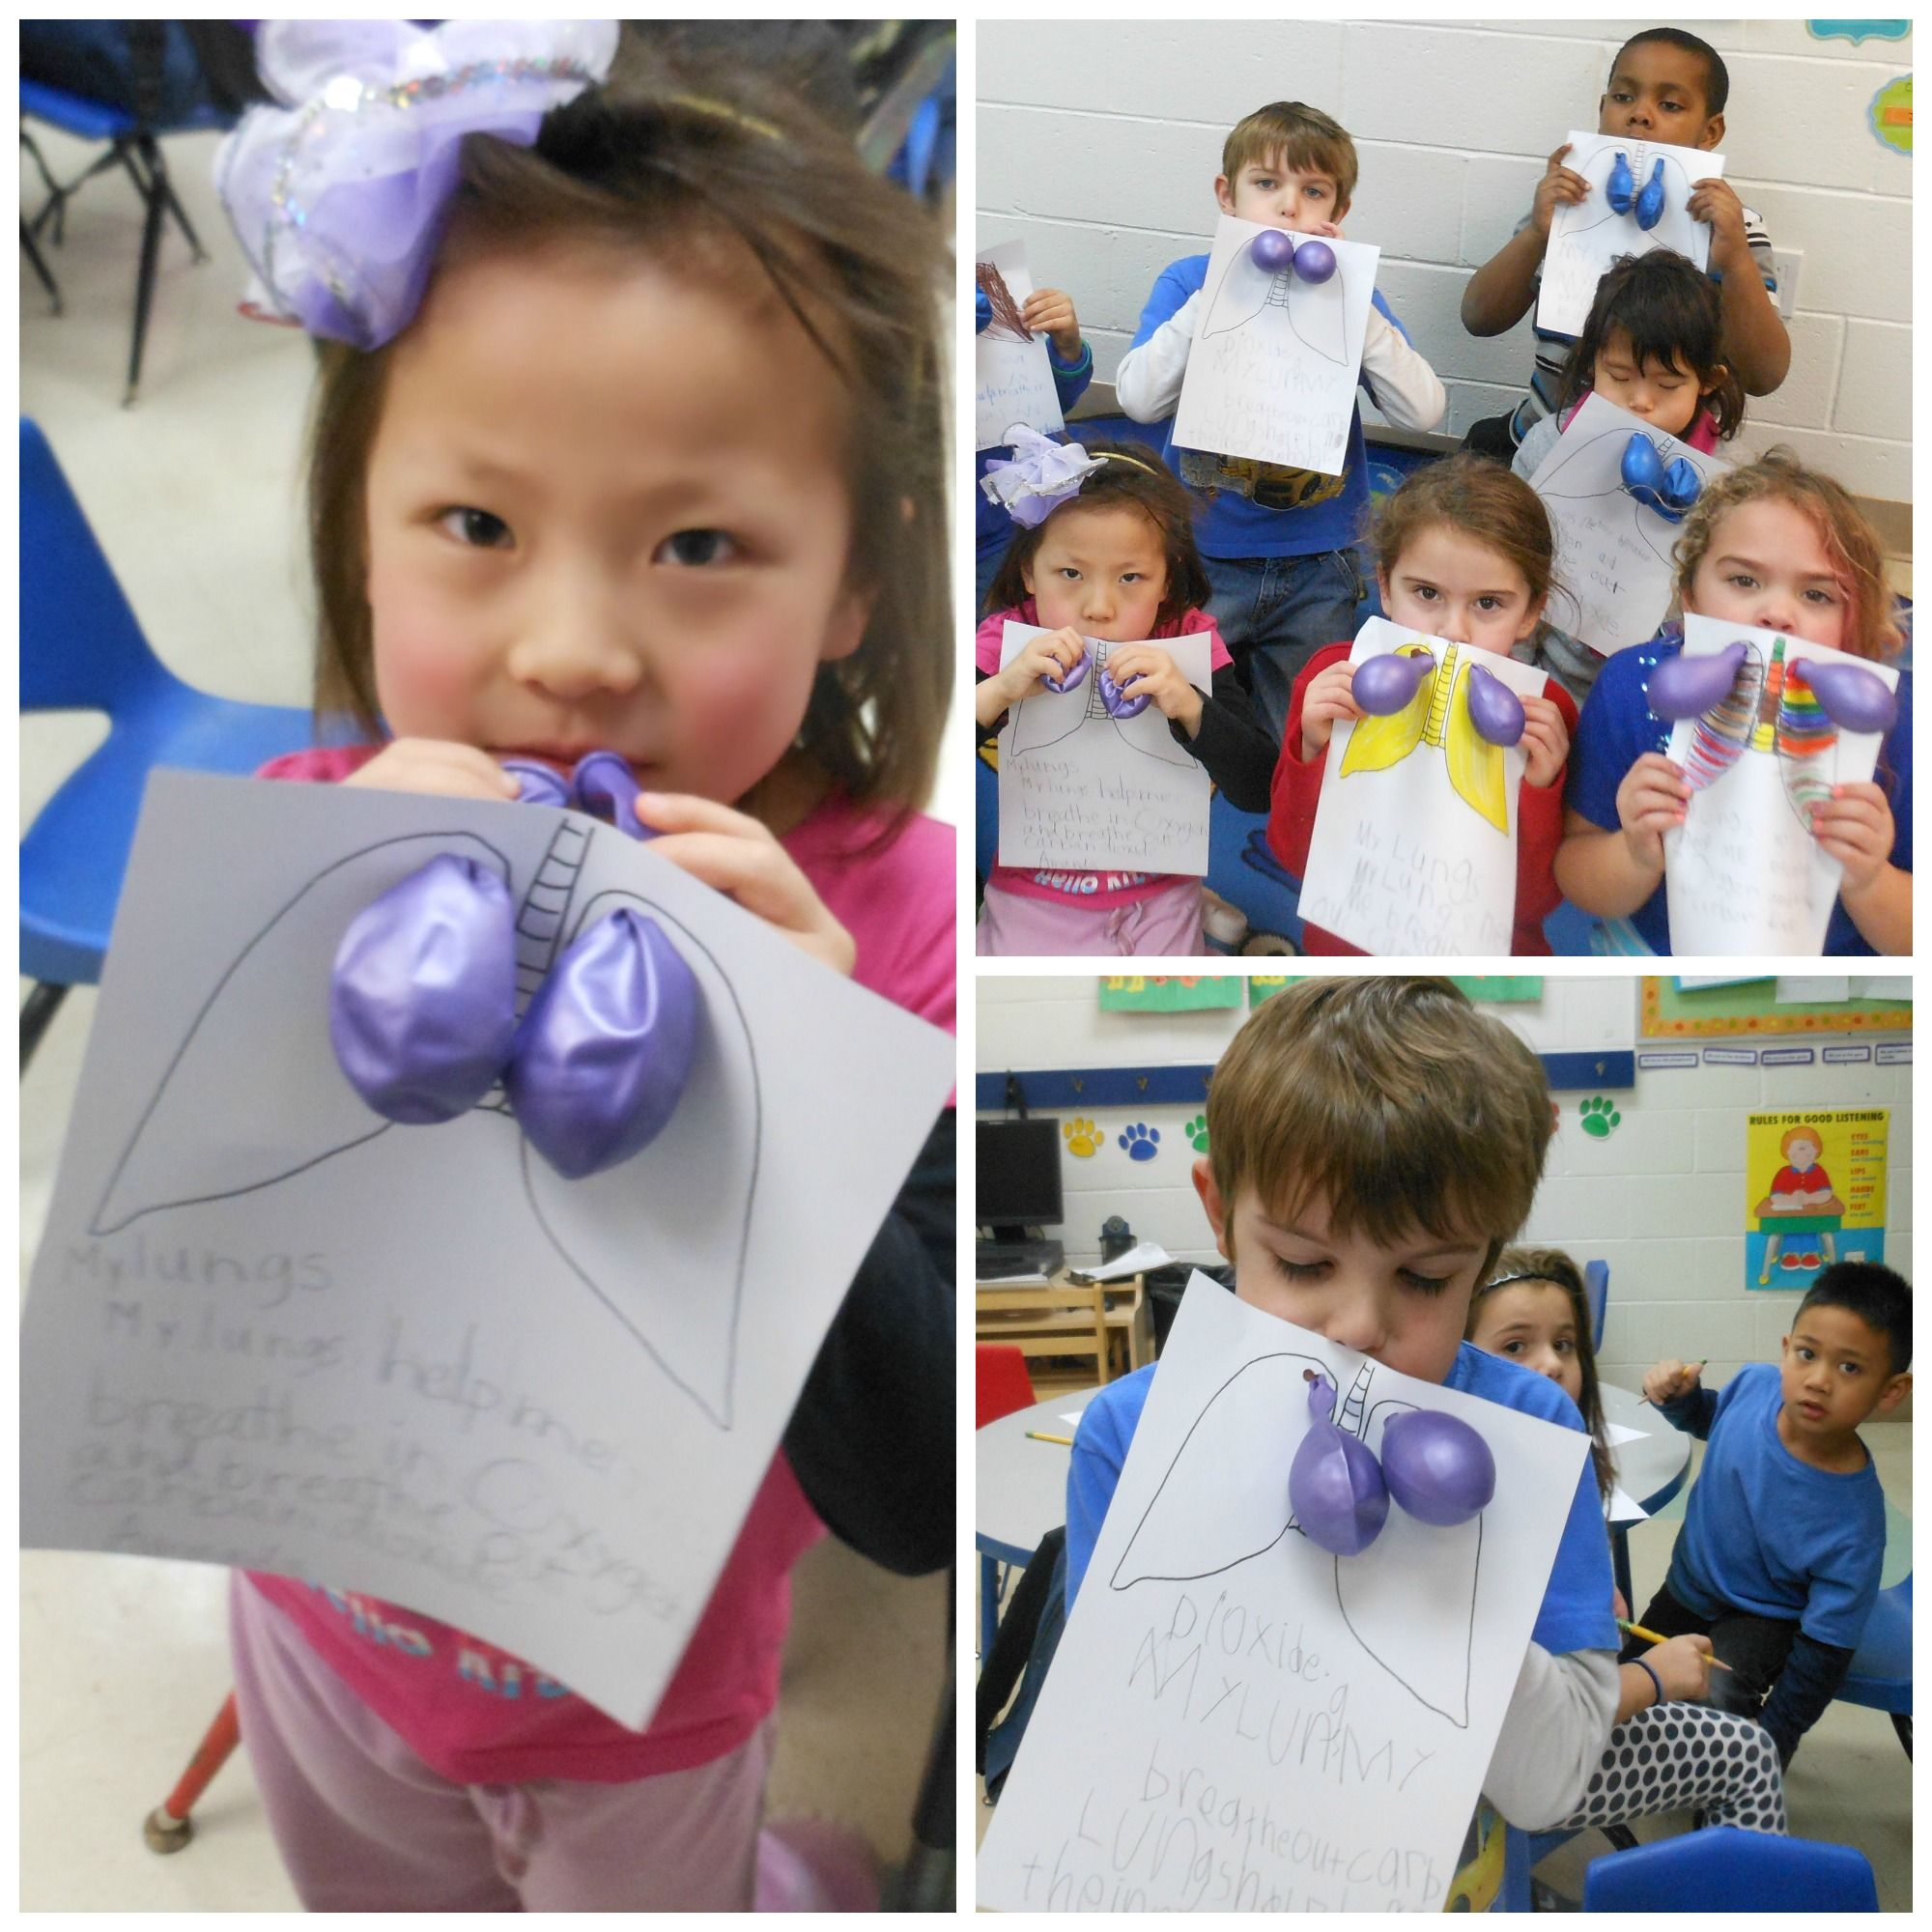 Worksheet Kindergarten Enrichment Activities our hillsborough kindergarten enrichment class loved this science activity start by having your child draw